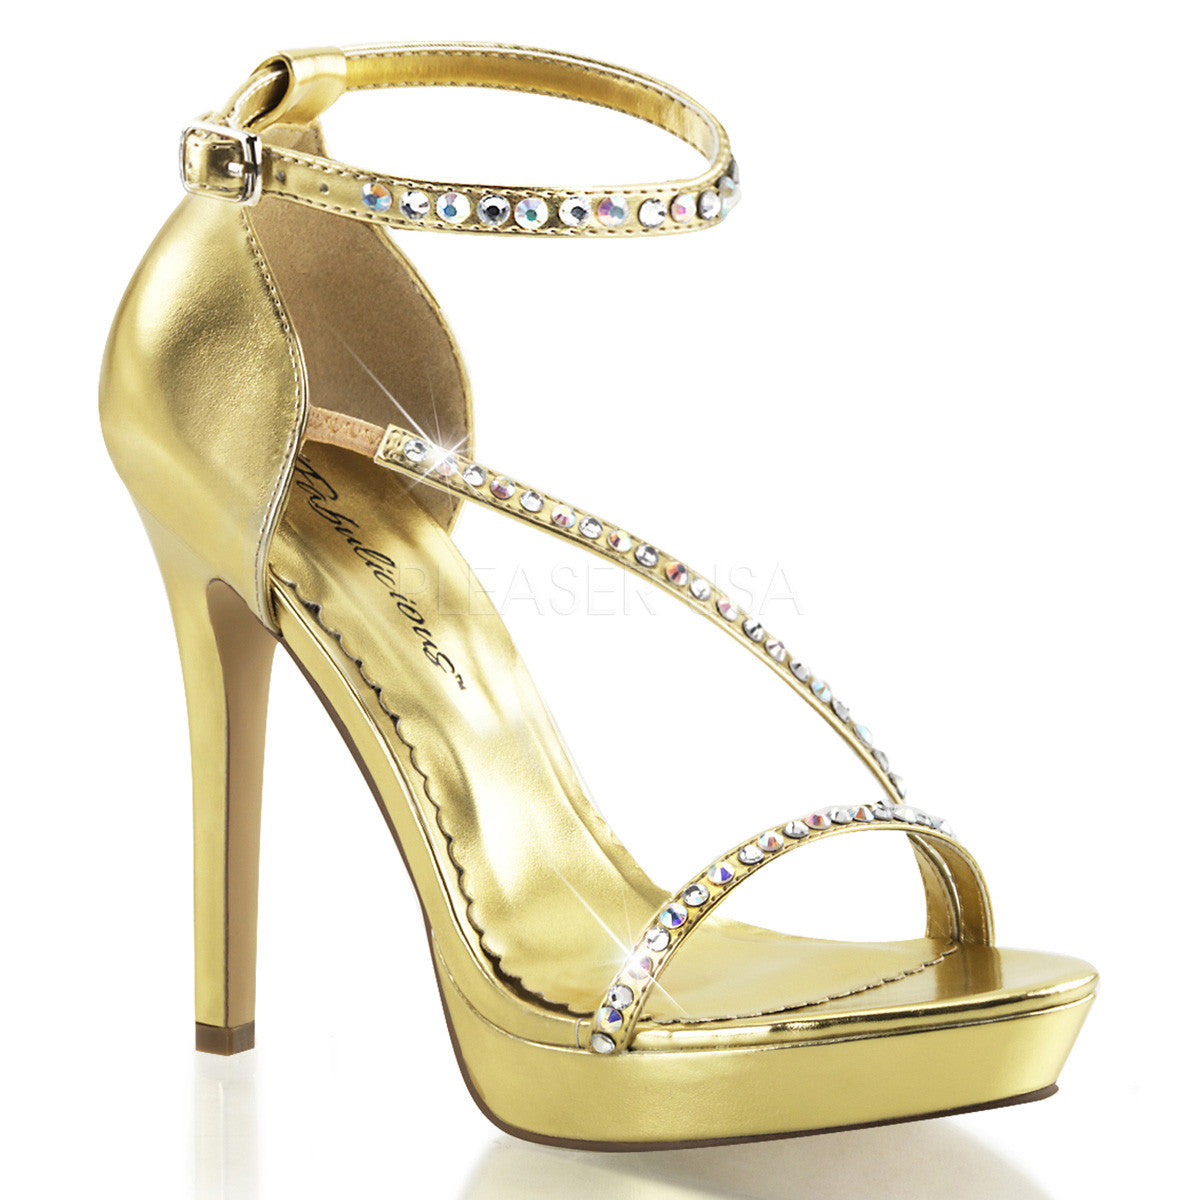 FABULICIOUS LUMINA-26 Gold Metallic Pu Ankle Strap Sandals - Shoecup.com